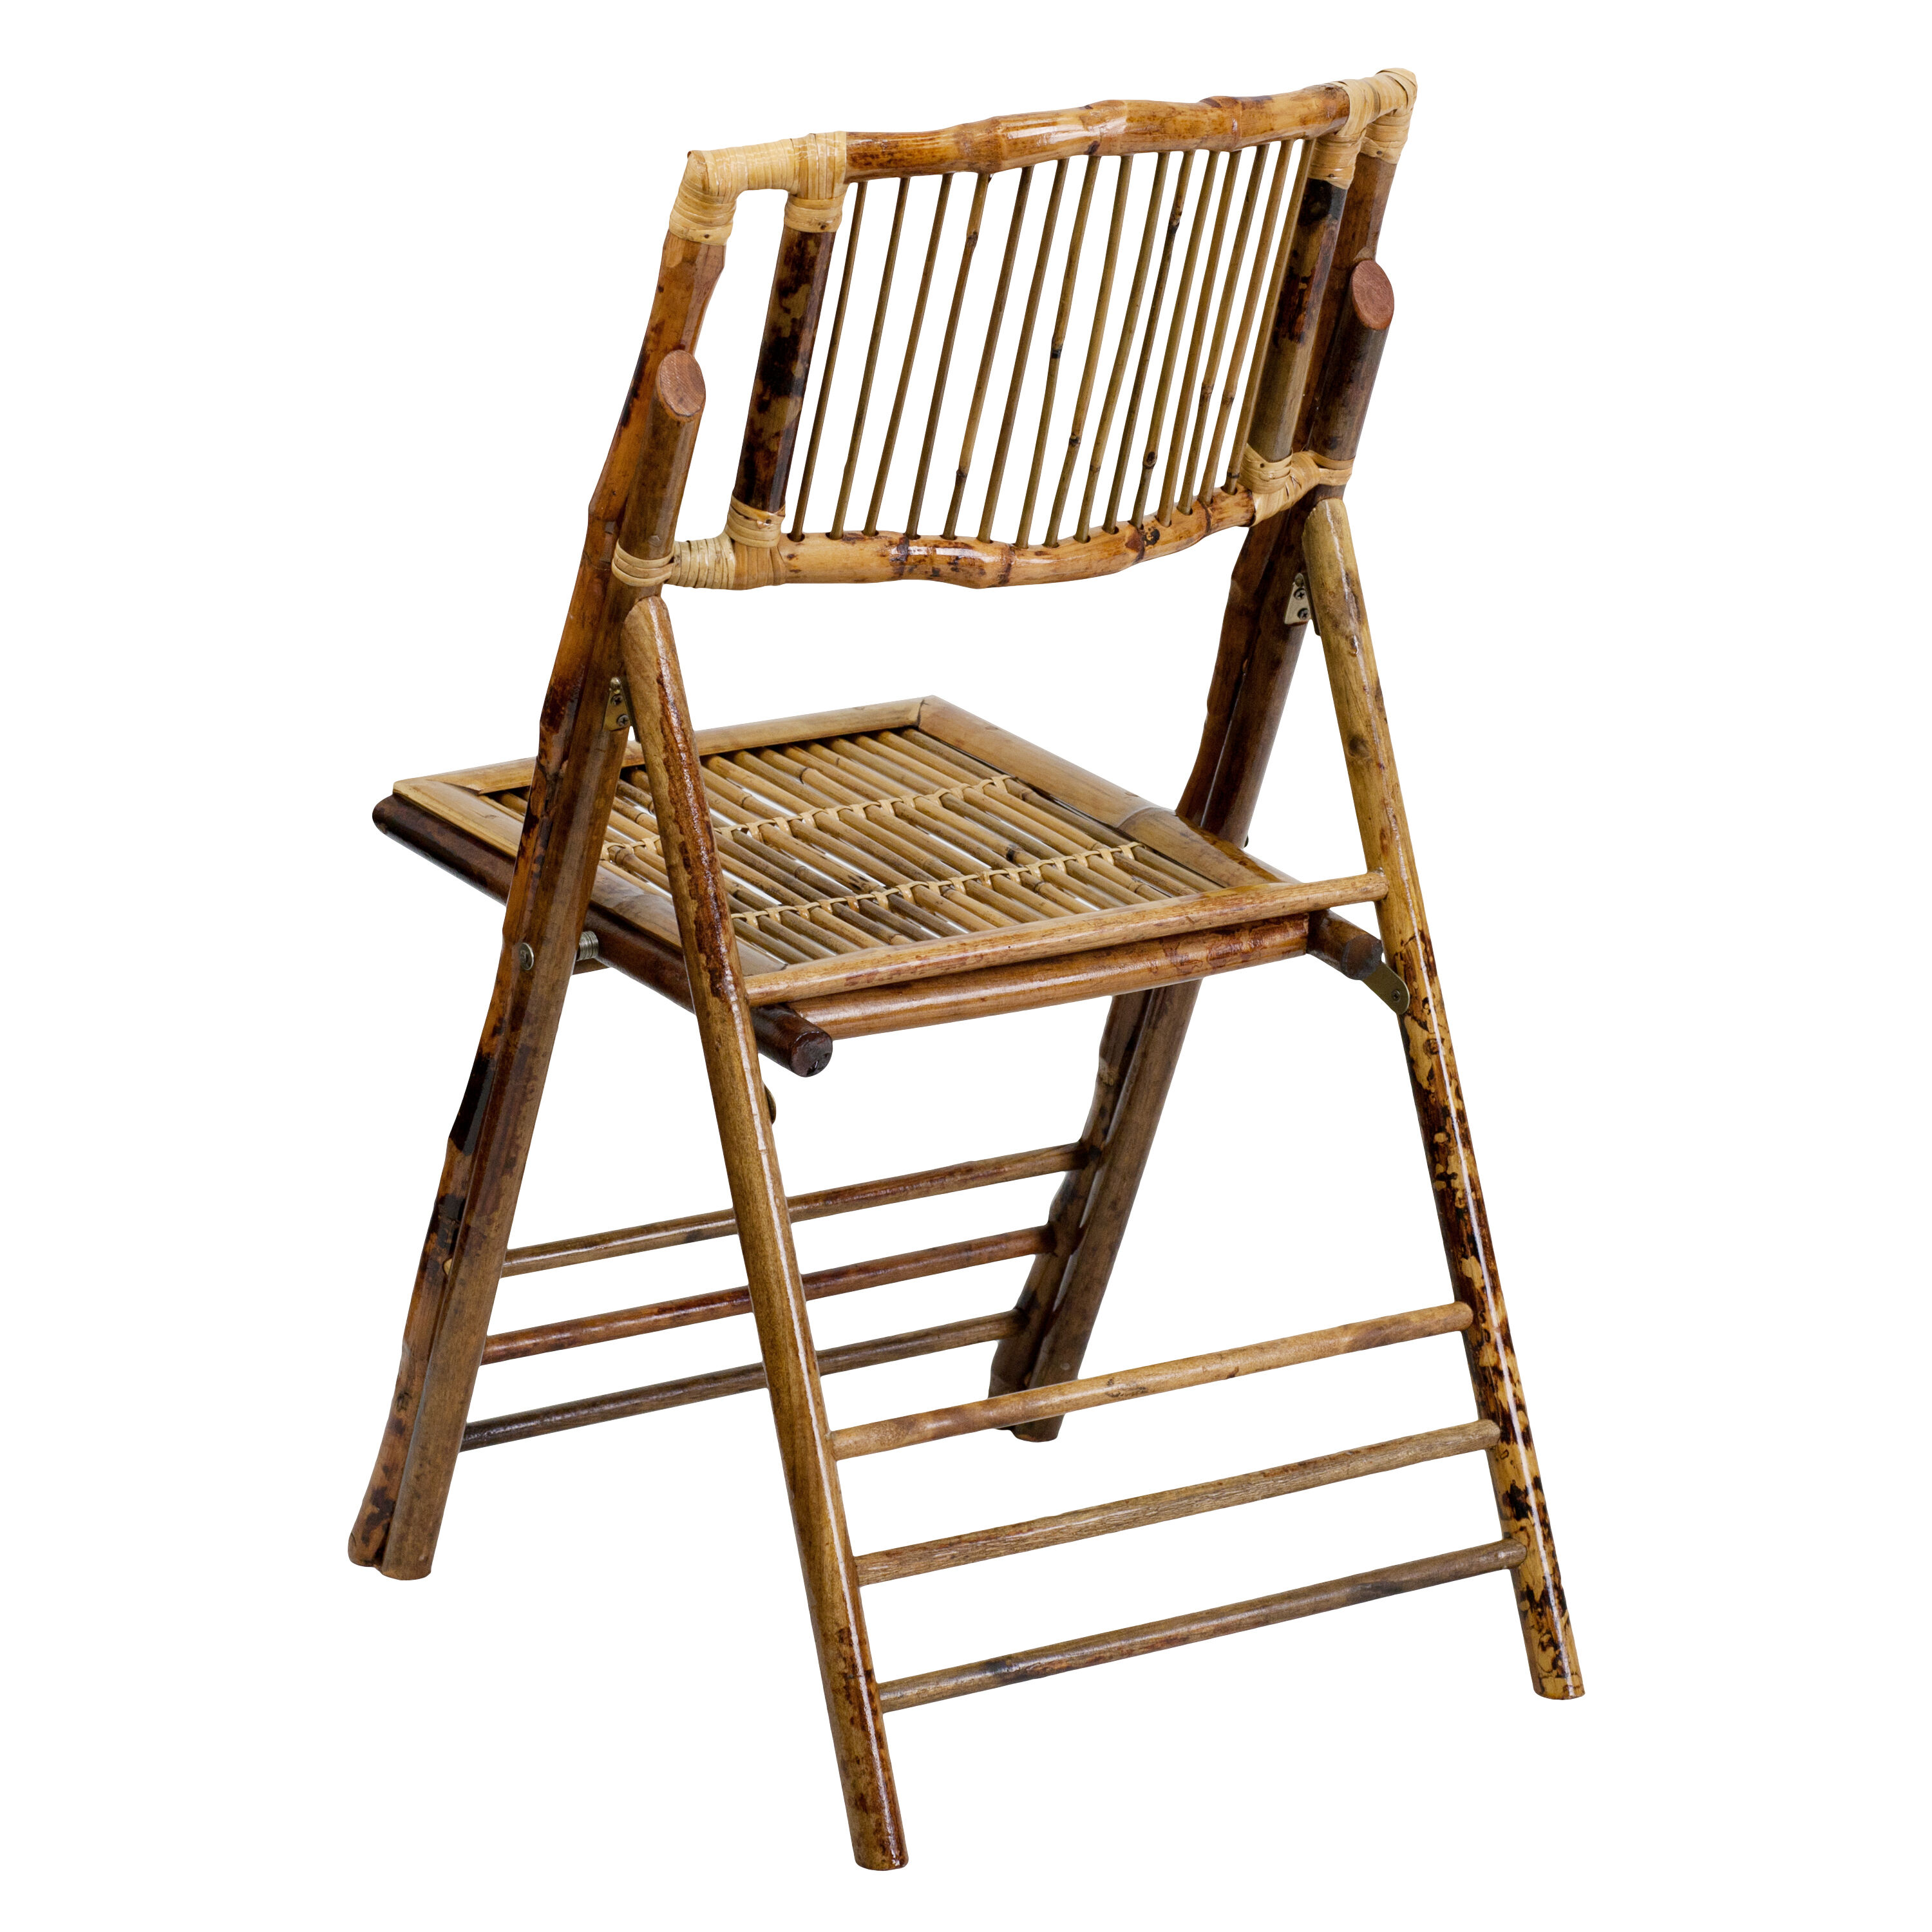 Collapsible Chair American Champion Bamboo Folding Chair